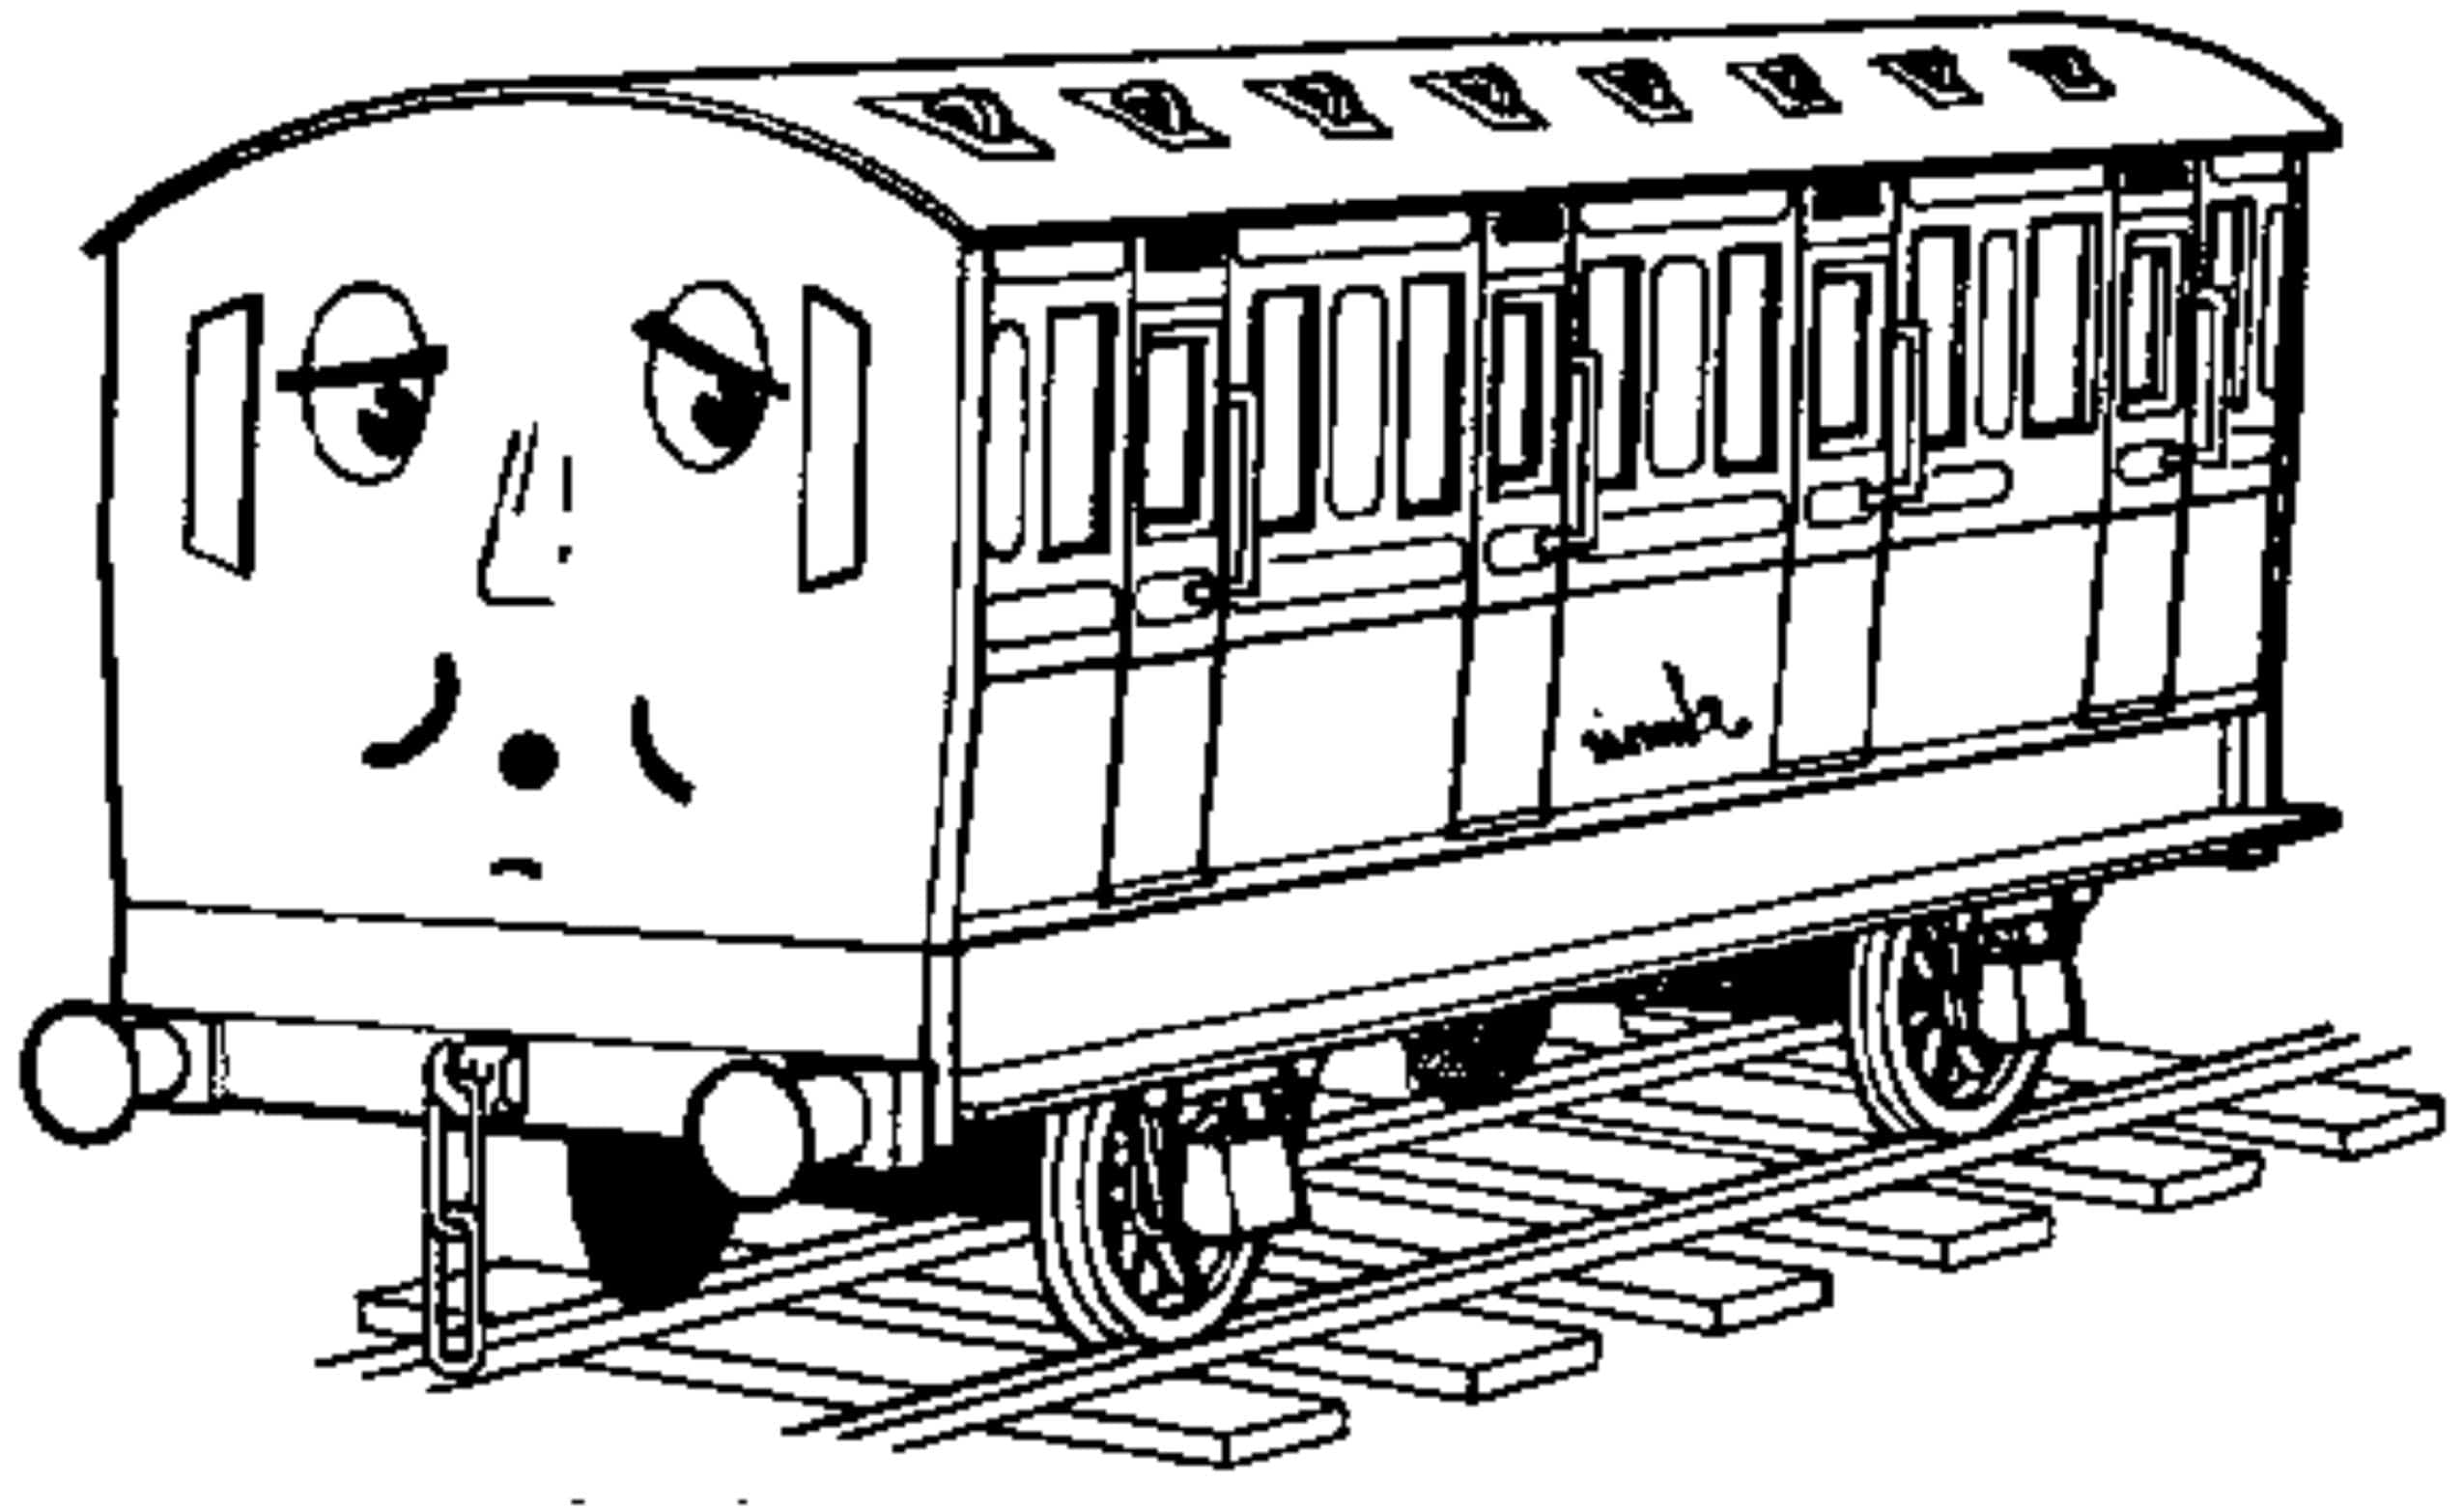 thomas-and-friends-coloring-pages-printable | | BestAppsForKids.com